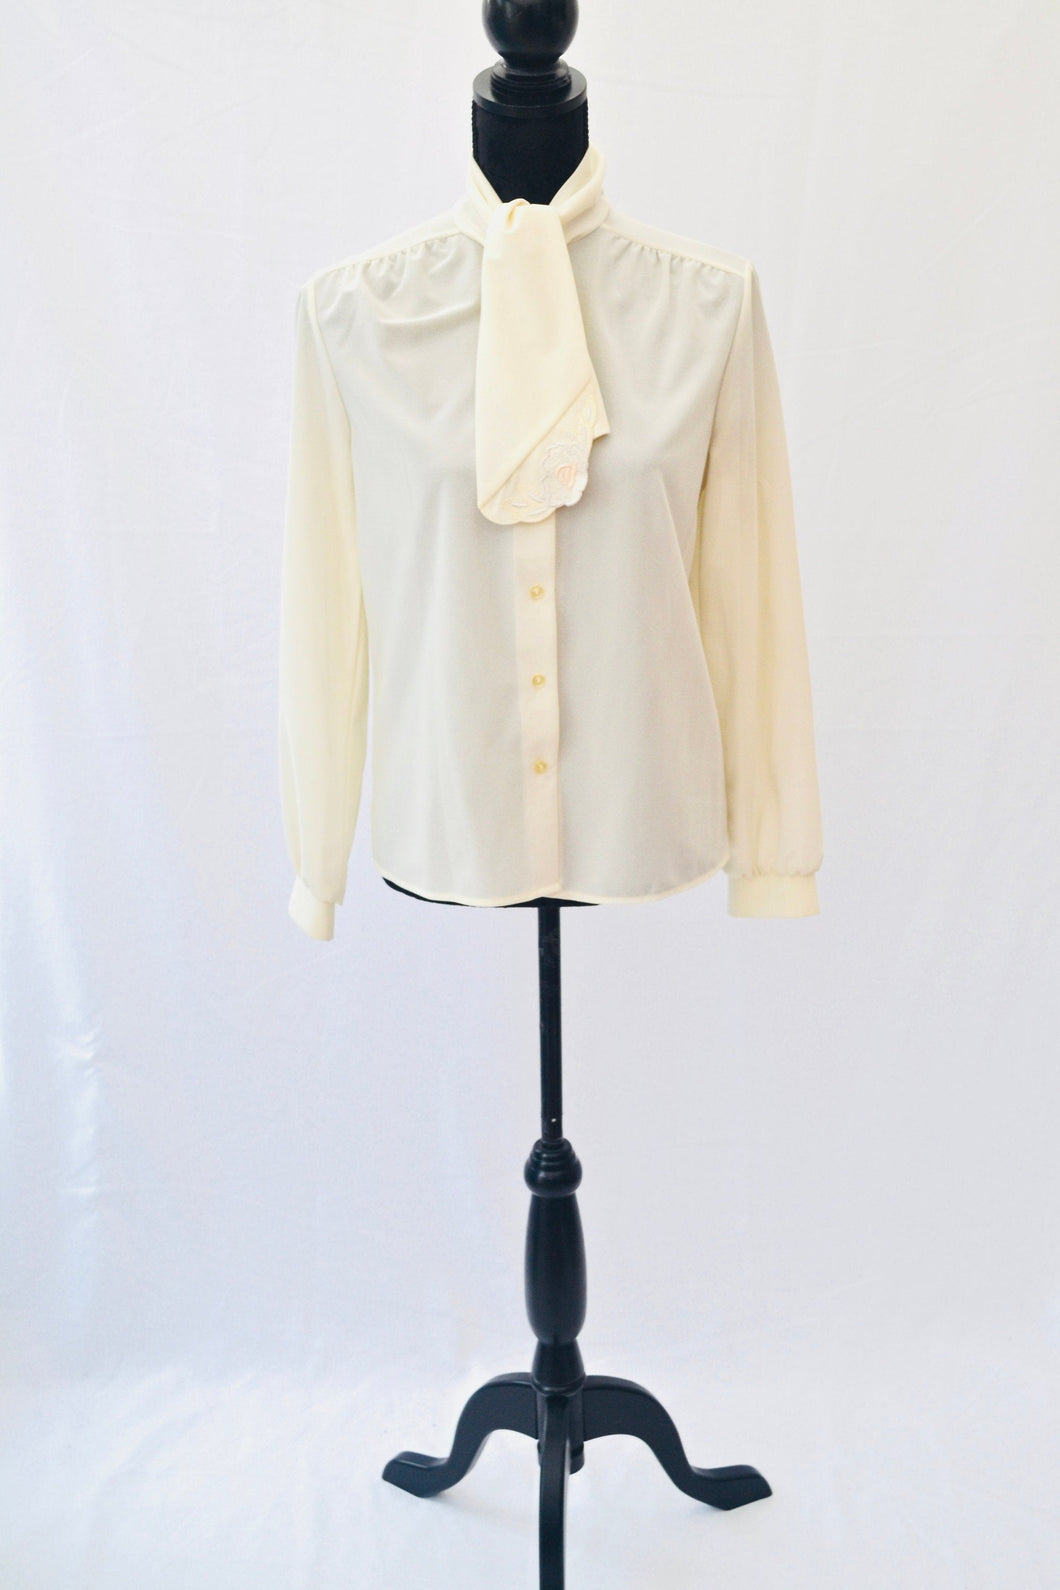 1990s Cream long sleeve blouse | Ladies shirt with neck tie | Formal top | Est UK size 10/12